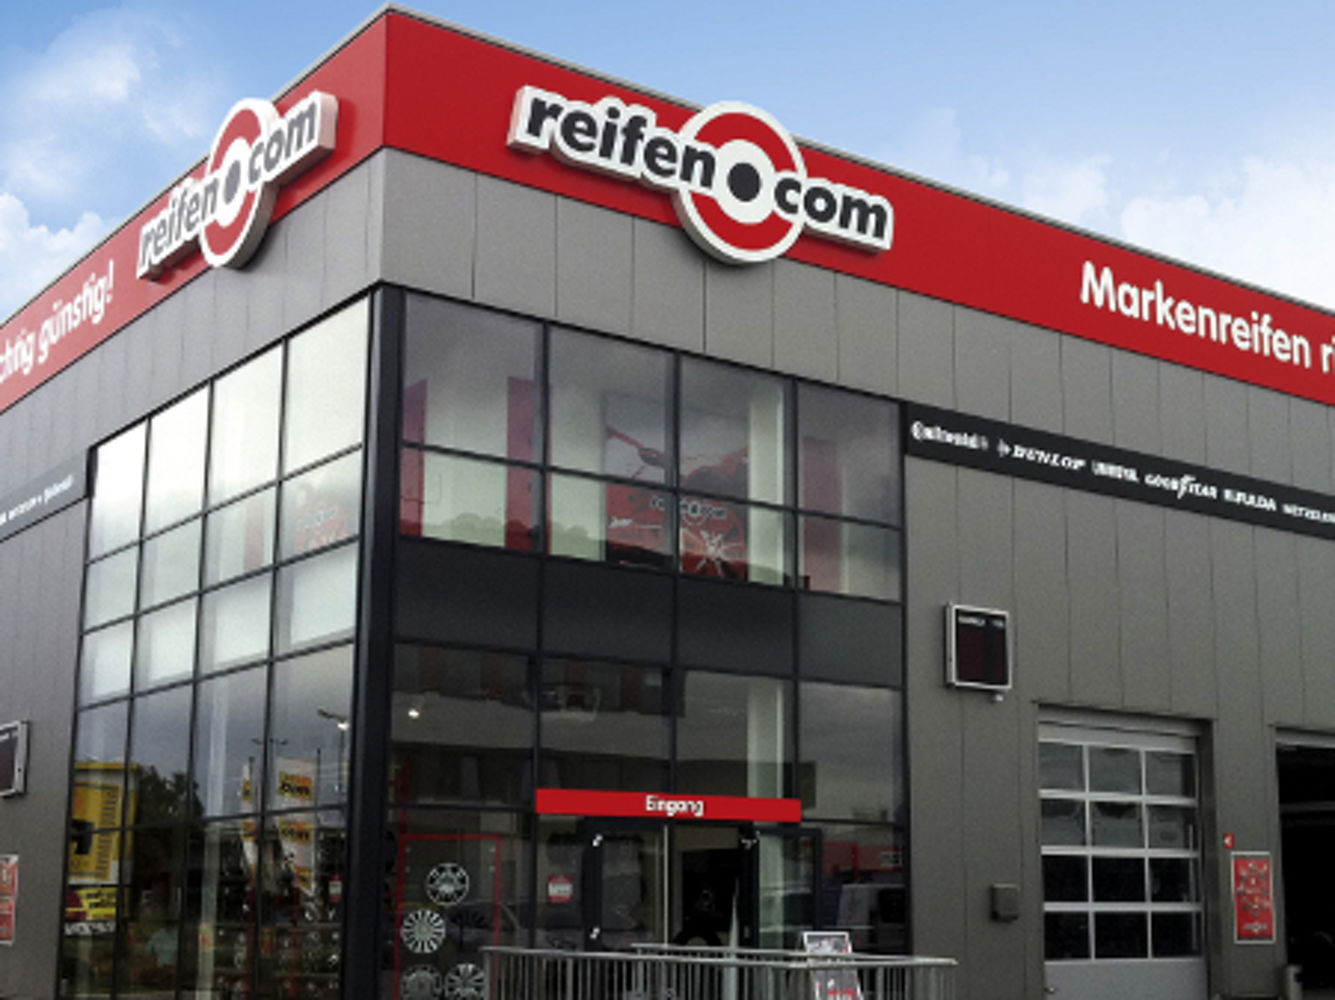 reifen.com-branch in Mainz